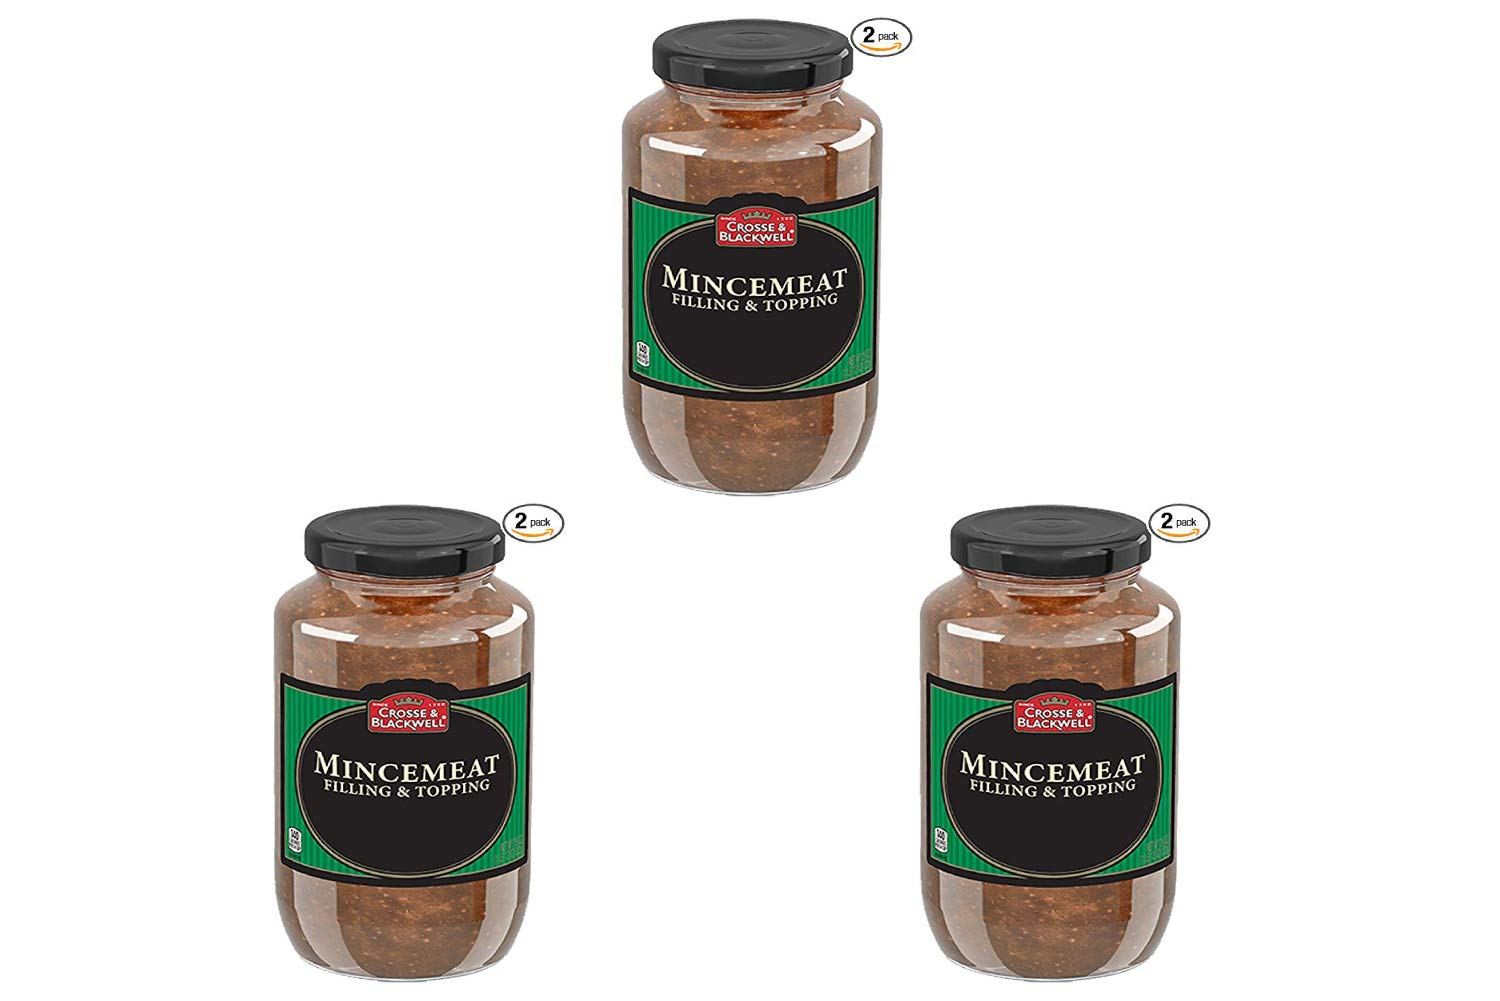 Crosse and Blackwell Mincemeat Plain 29 Ounce 2 Count (3 Pack)